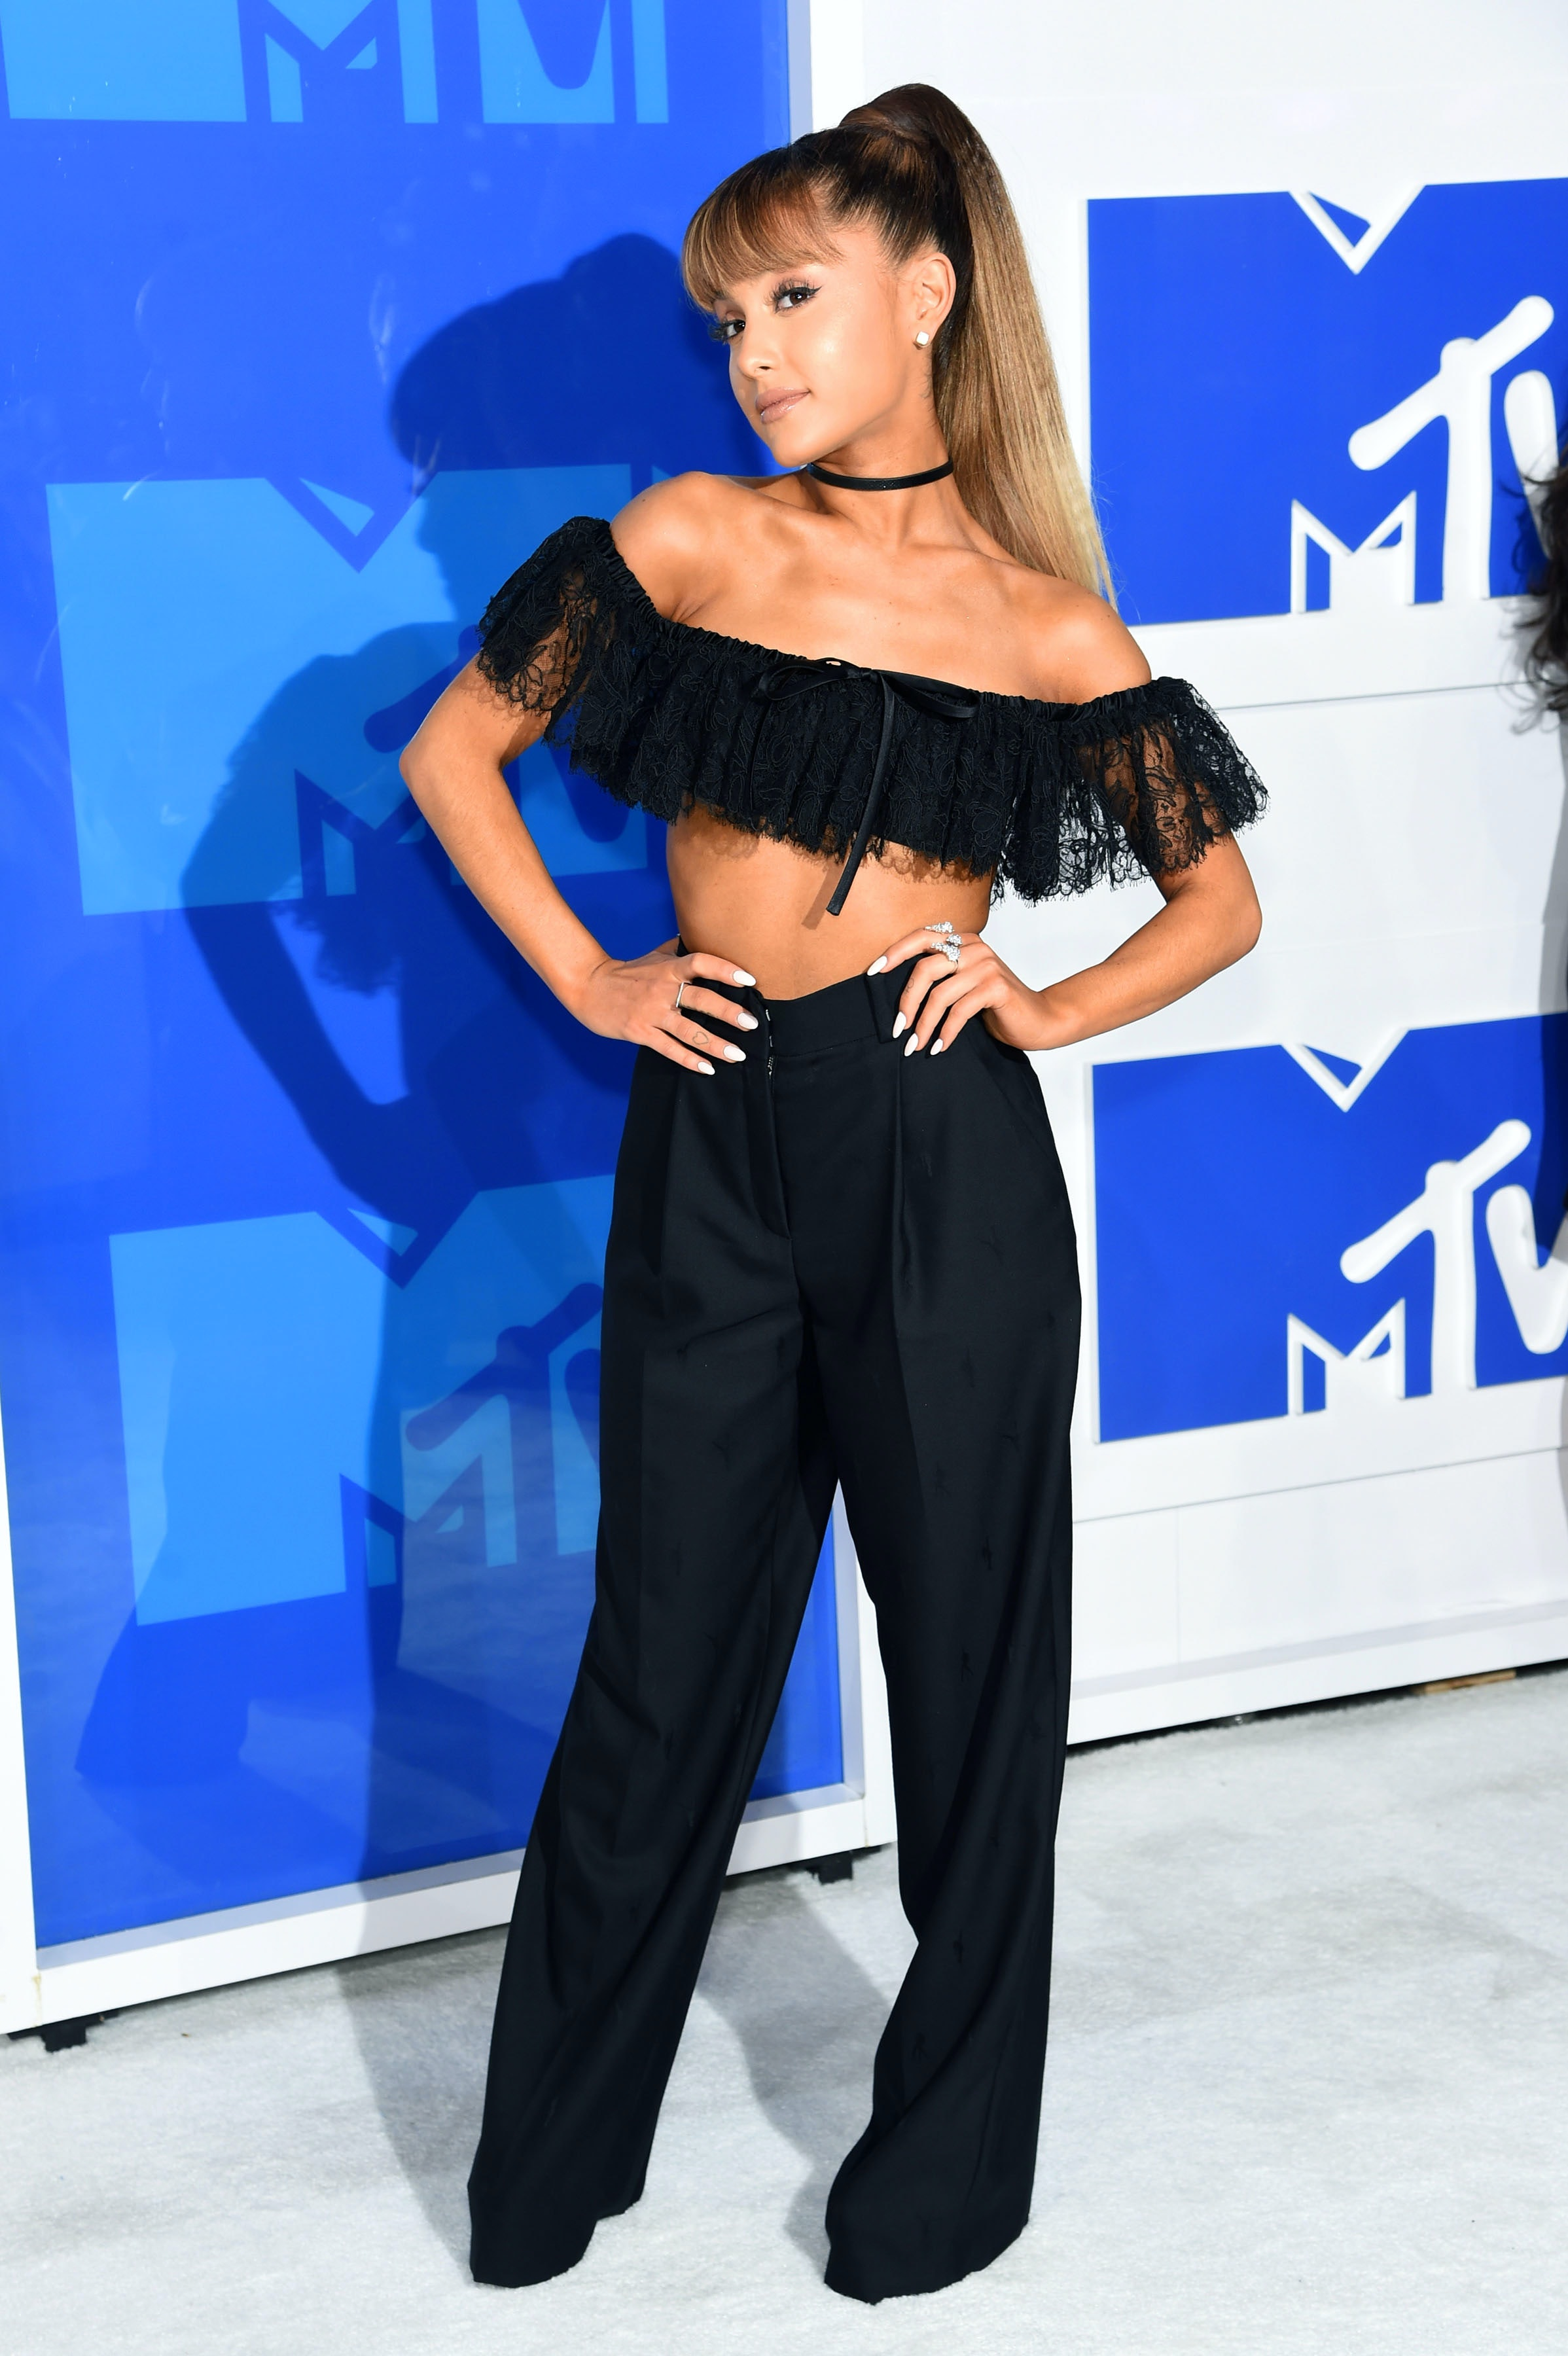 f2d594154f Ariana Grande's 2018 VMAs Look Is Literally Out Of This World